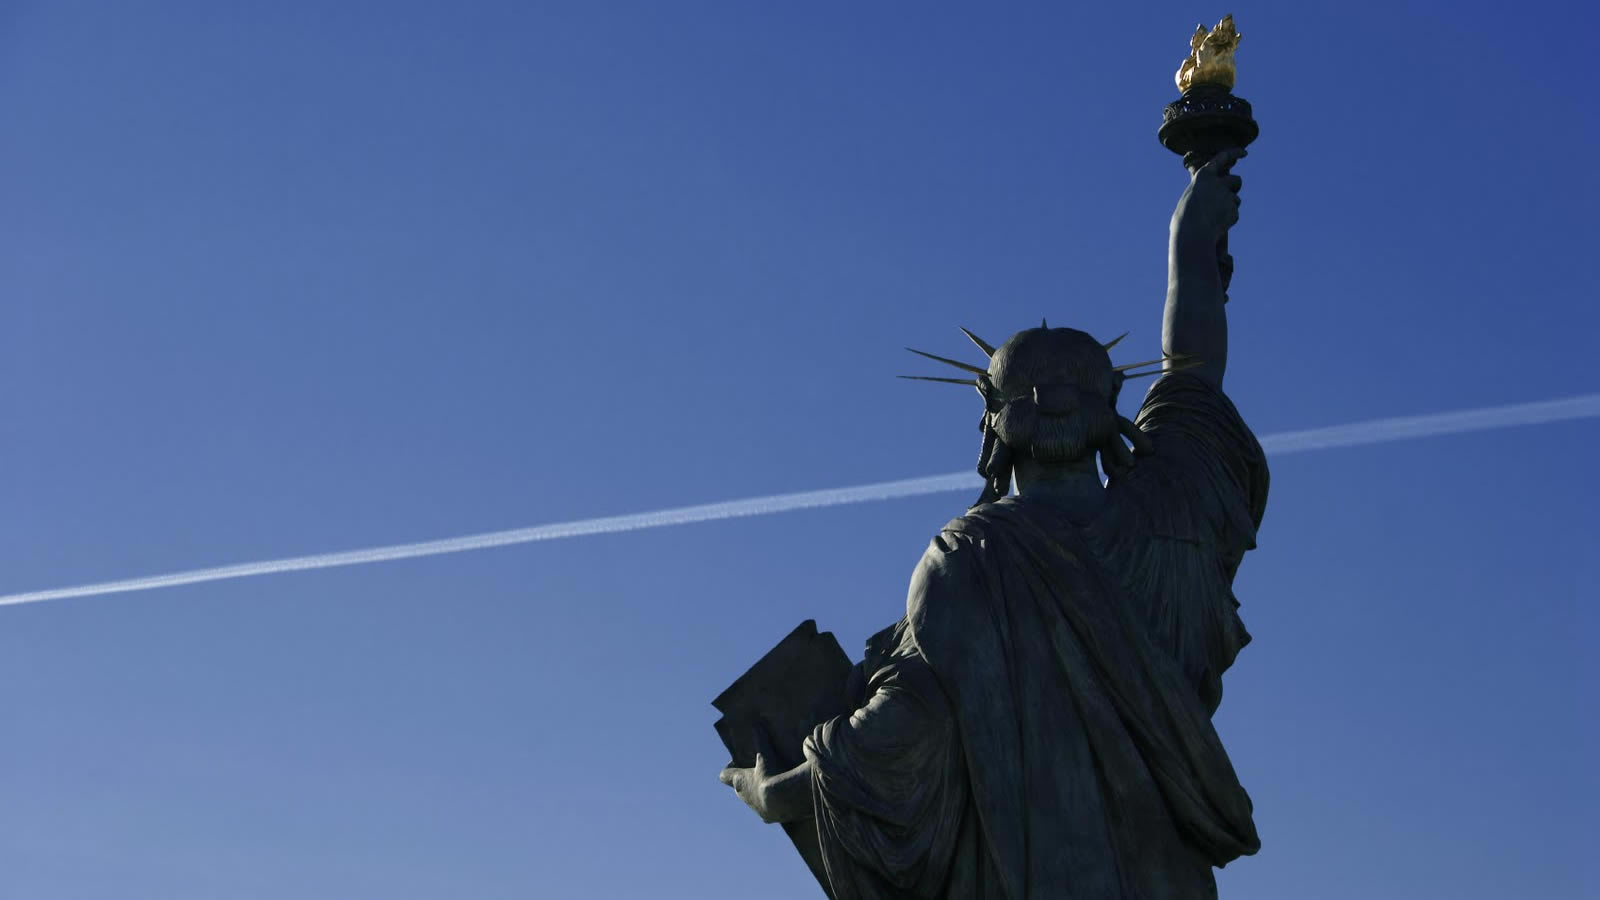 Statue of Liberty with Plane Contrail